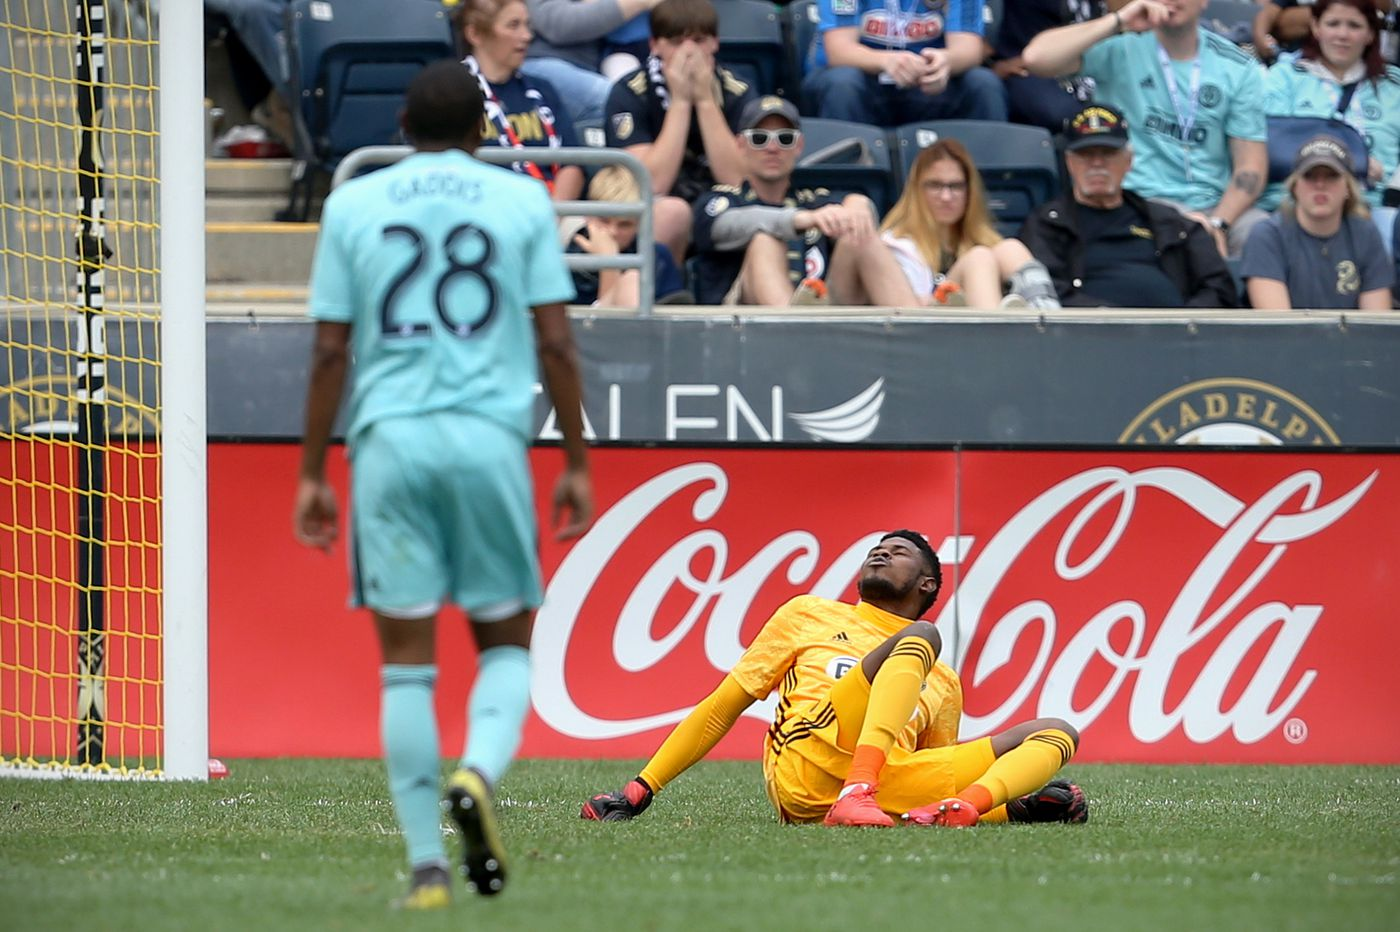 Union beat Montreal Impact 3-0, but lose Andre Blake to groin injury